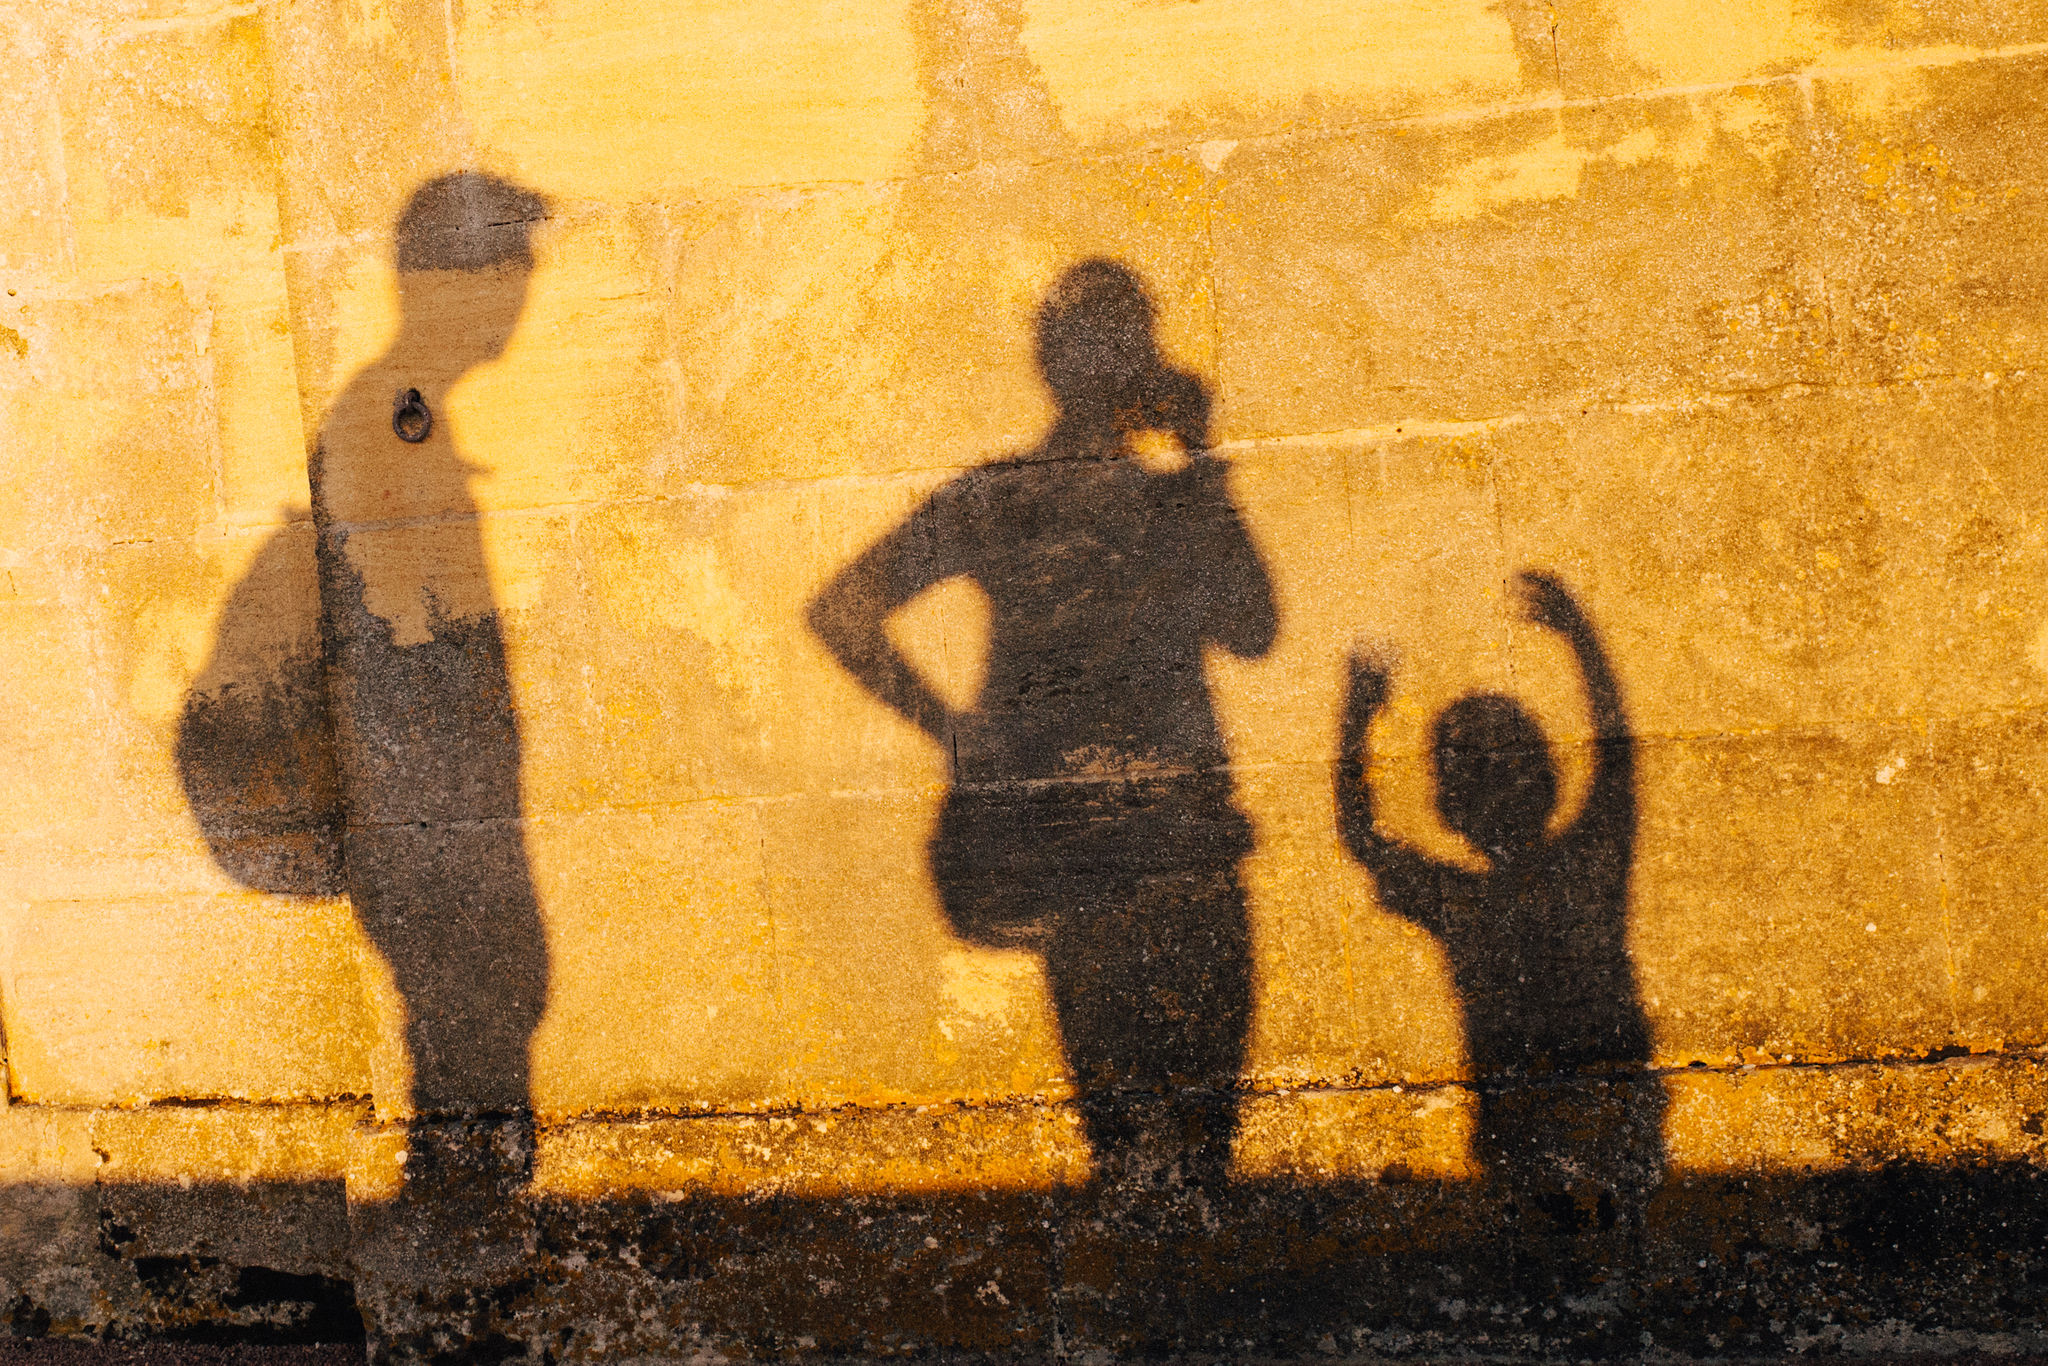 Shadows of a family